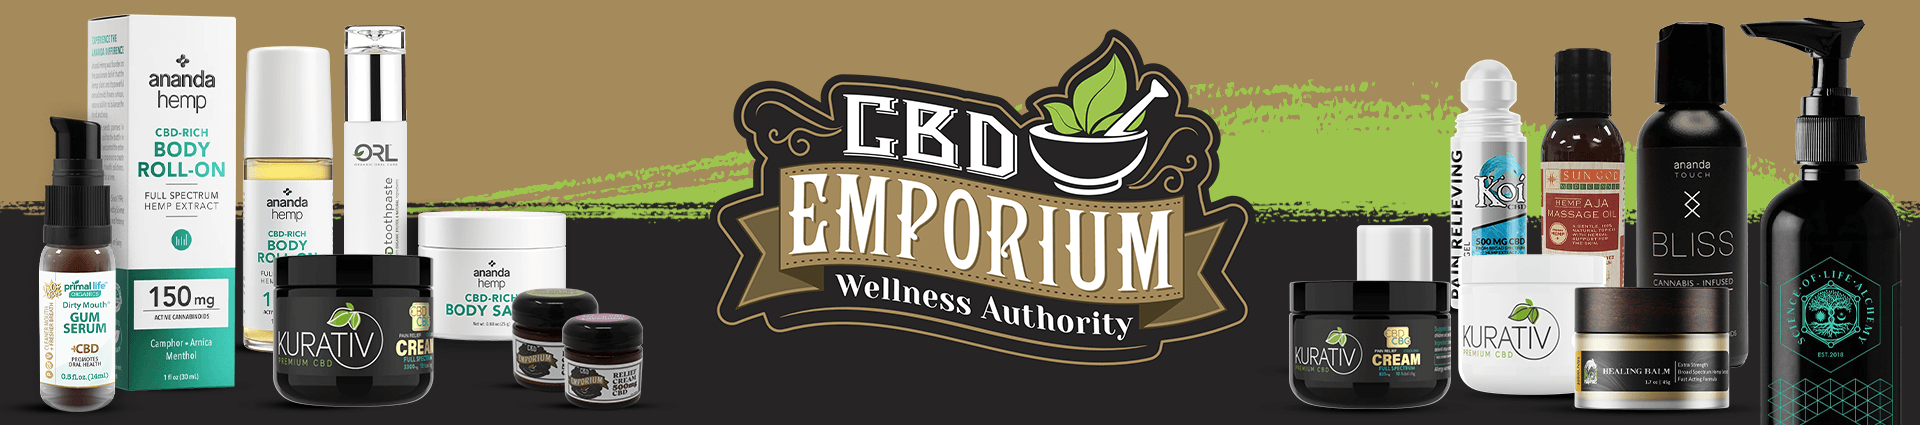 CBD Bath and Body at CBD Emporium